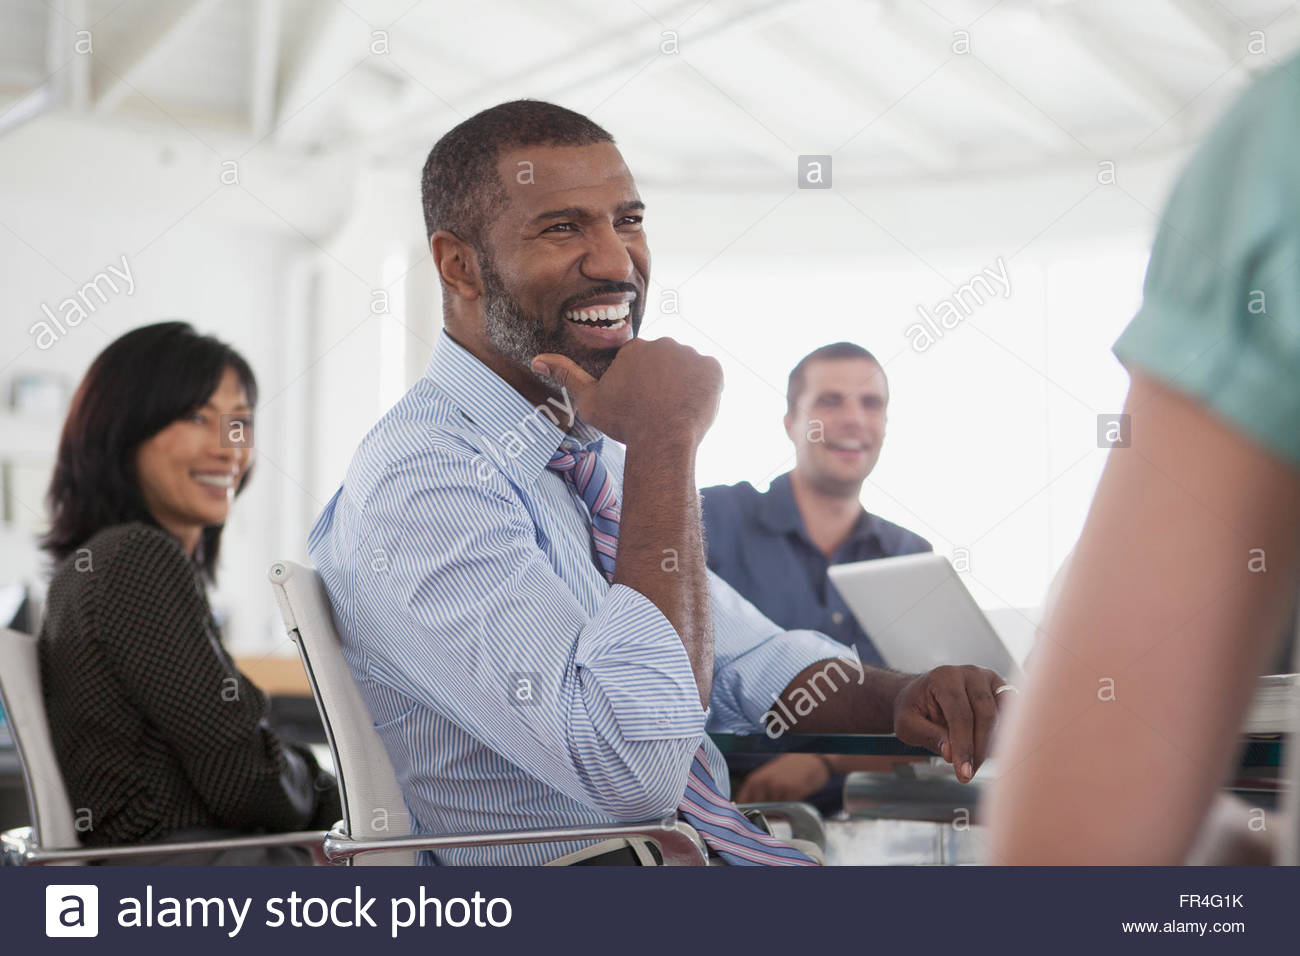 attractive middle aged businessman having a laugh during a meeting - Stock Image